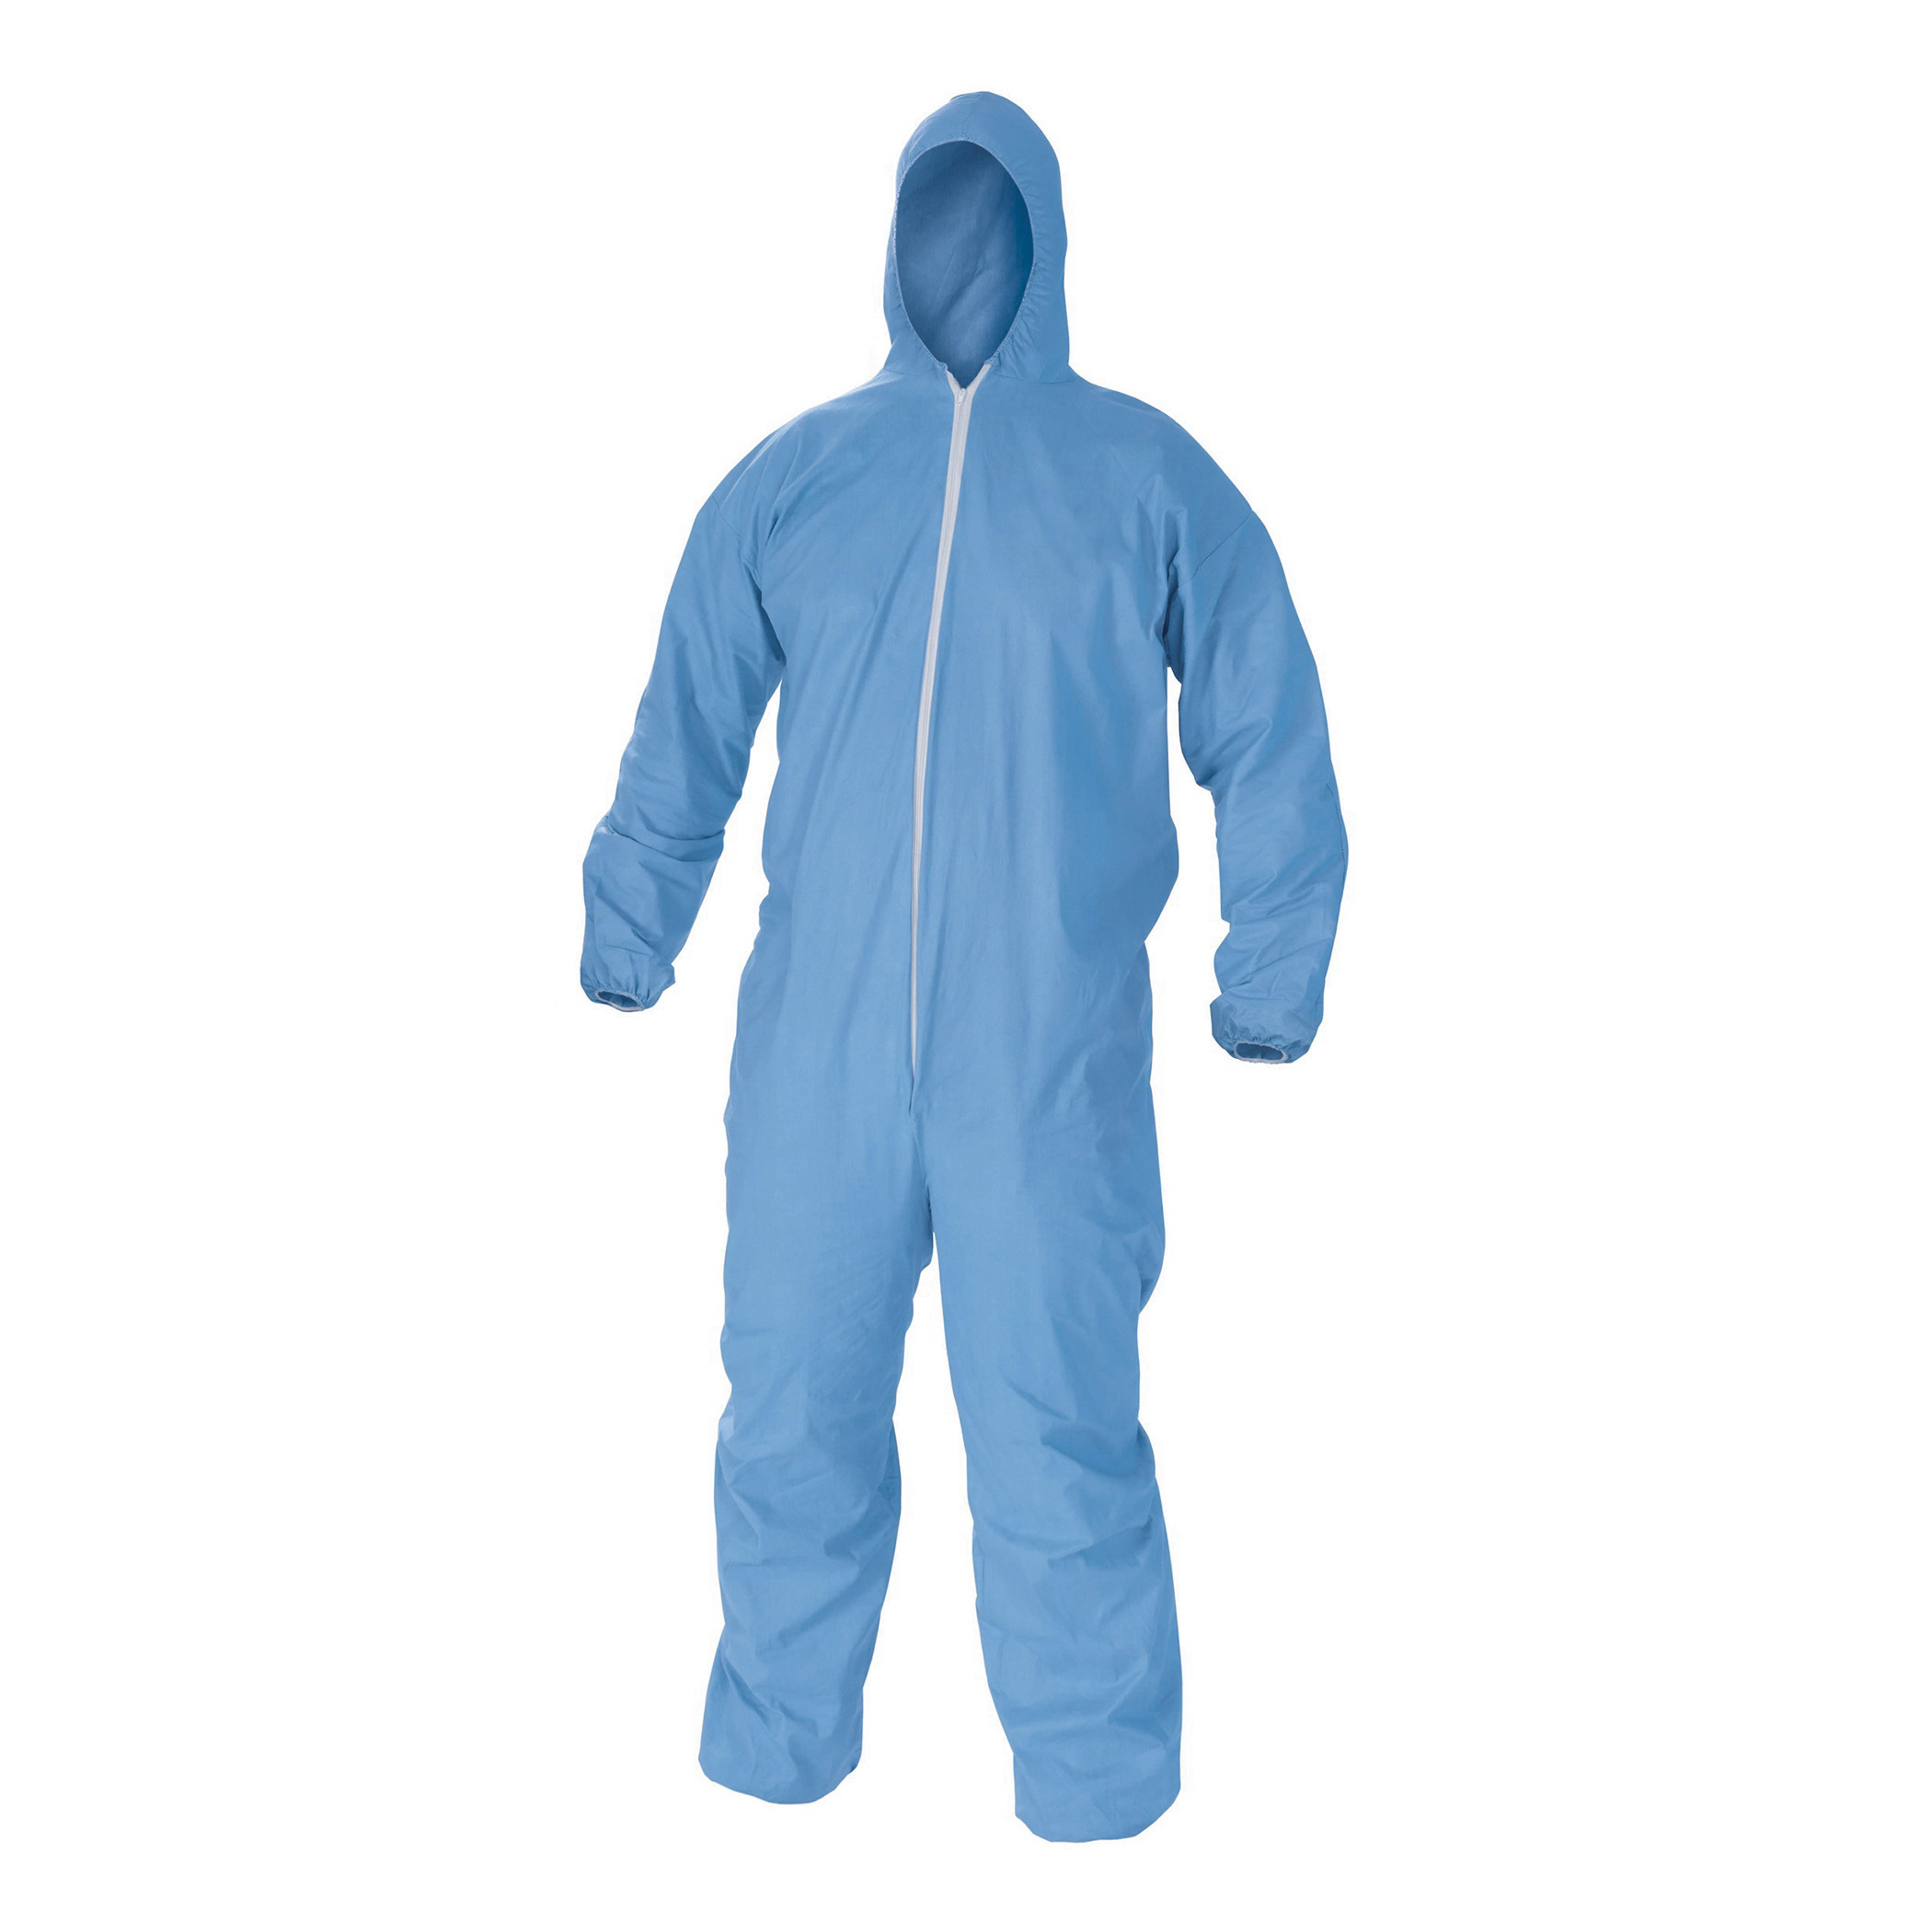 KleenGuard™ 45325 A65 Anti-Static Disposable Flame Resistant Coverall, 2XL, Blue, Polyester Spun, 50 to 52 in Chest, 32 in L Inseam